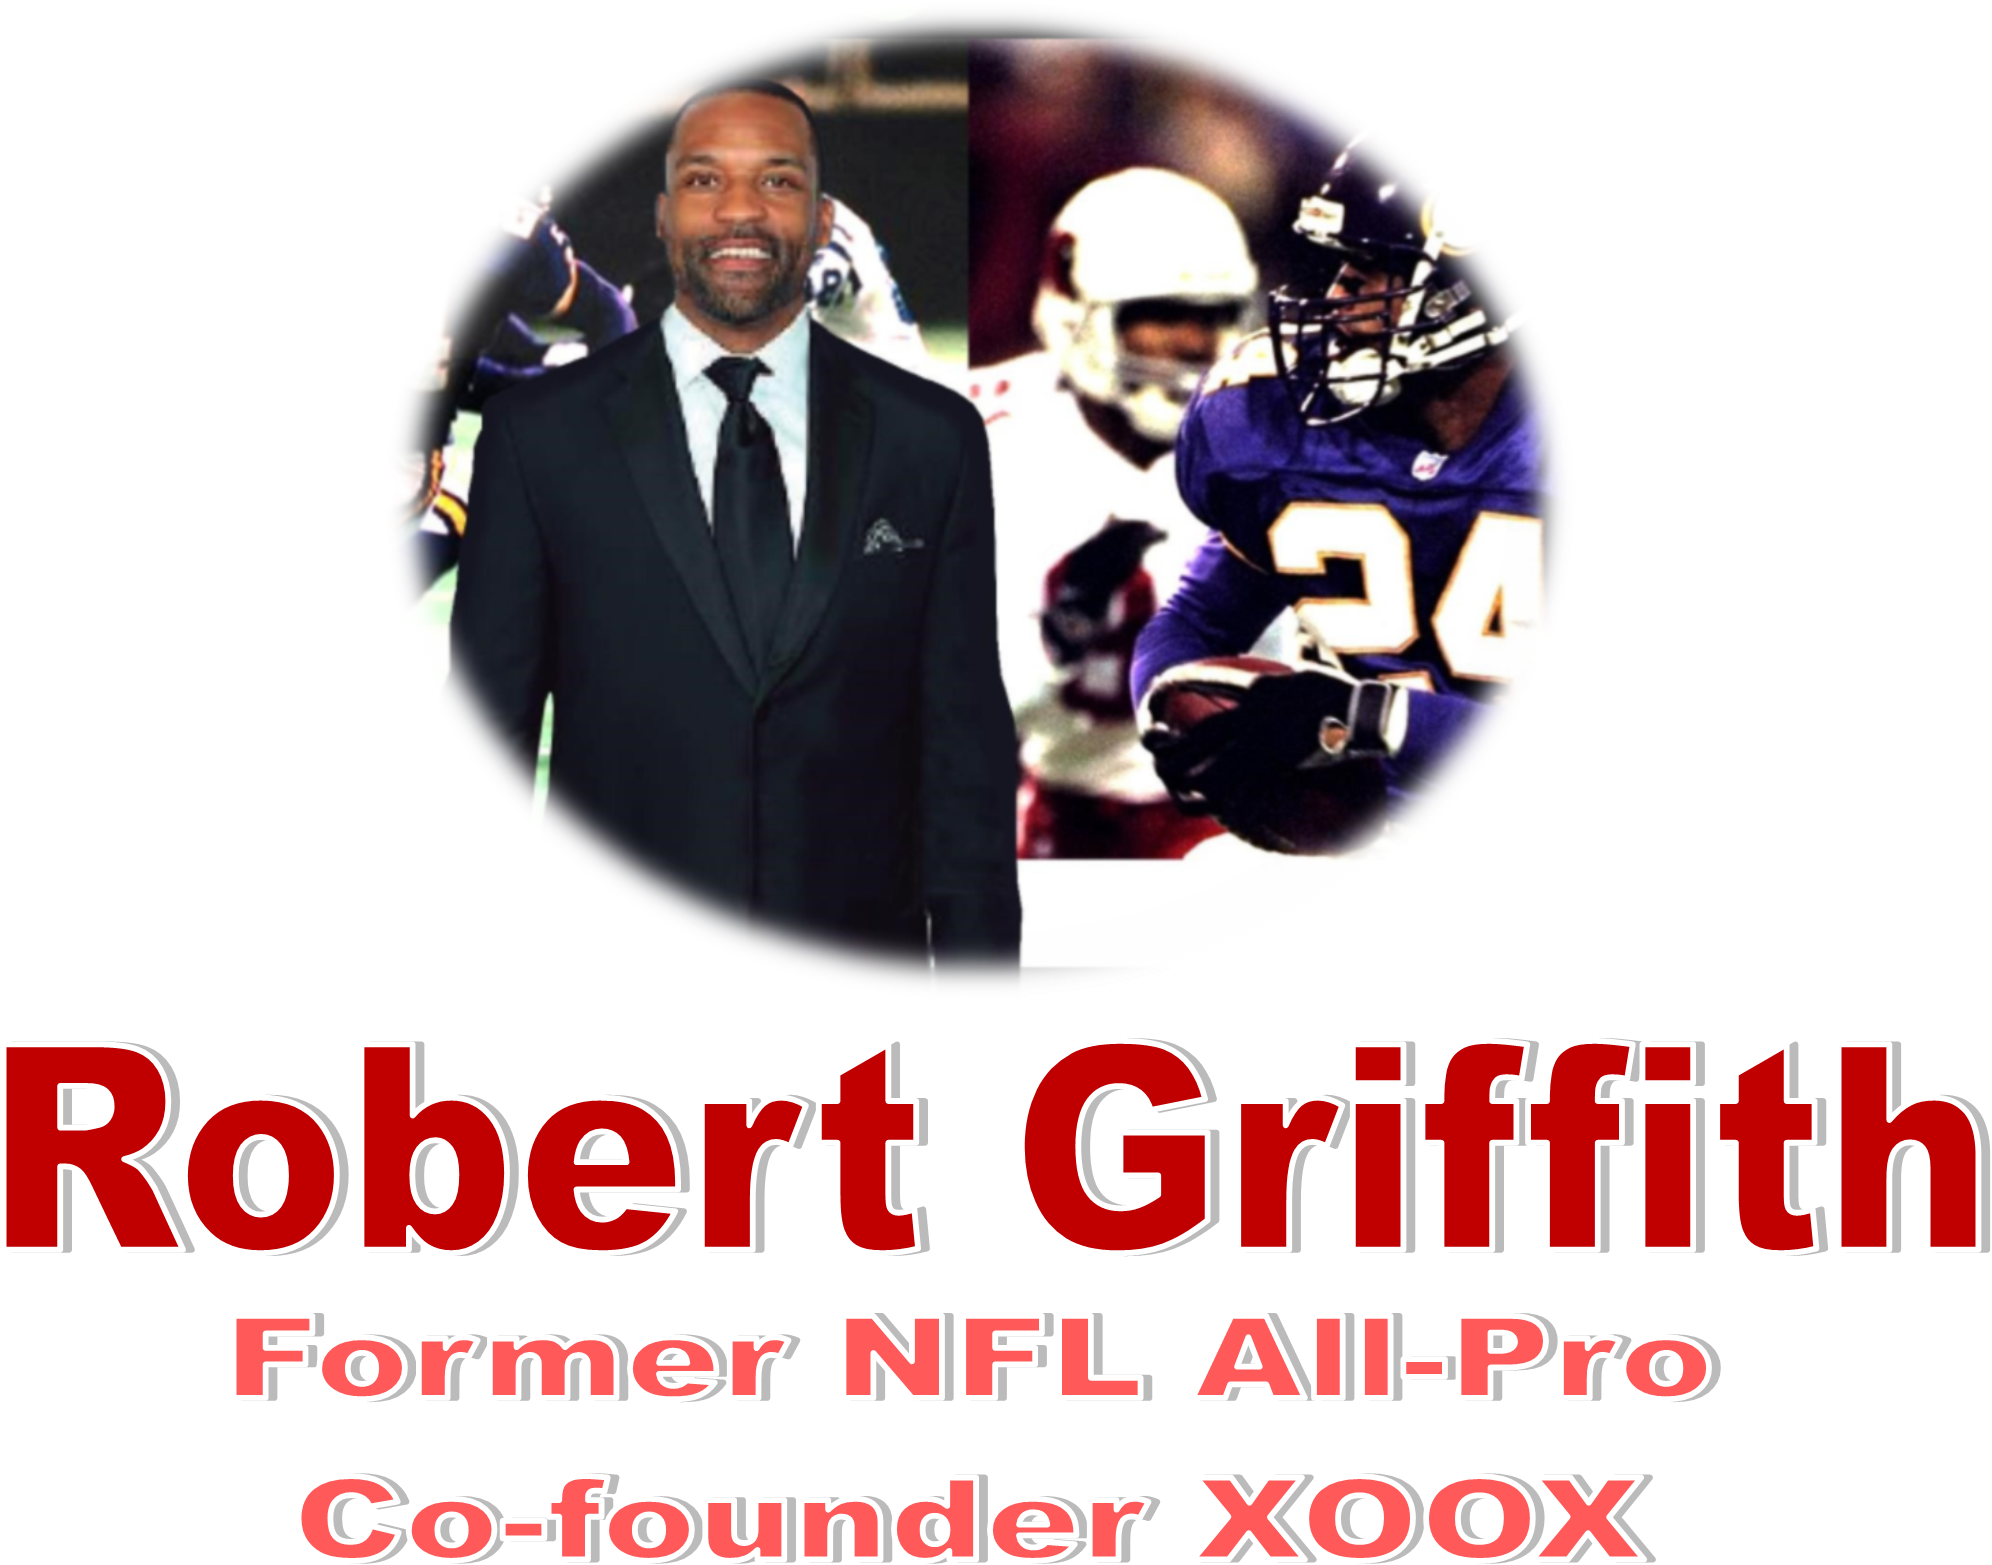 Robert Griffith